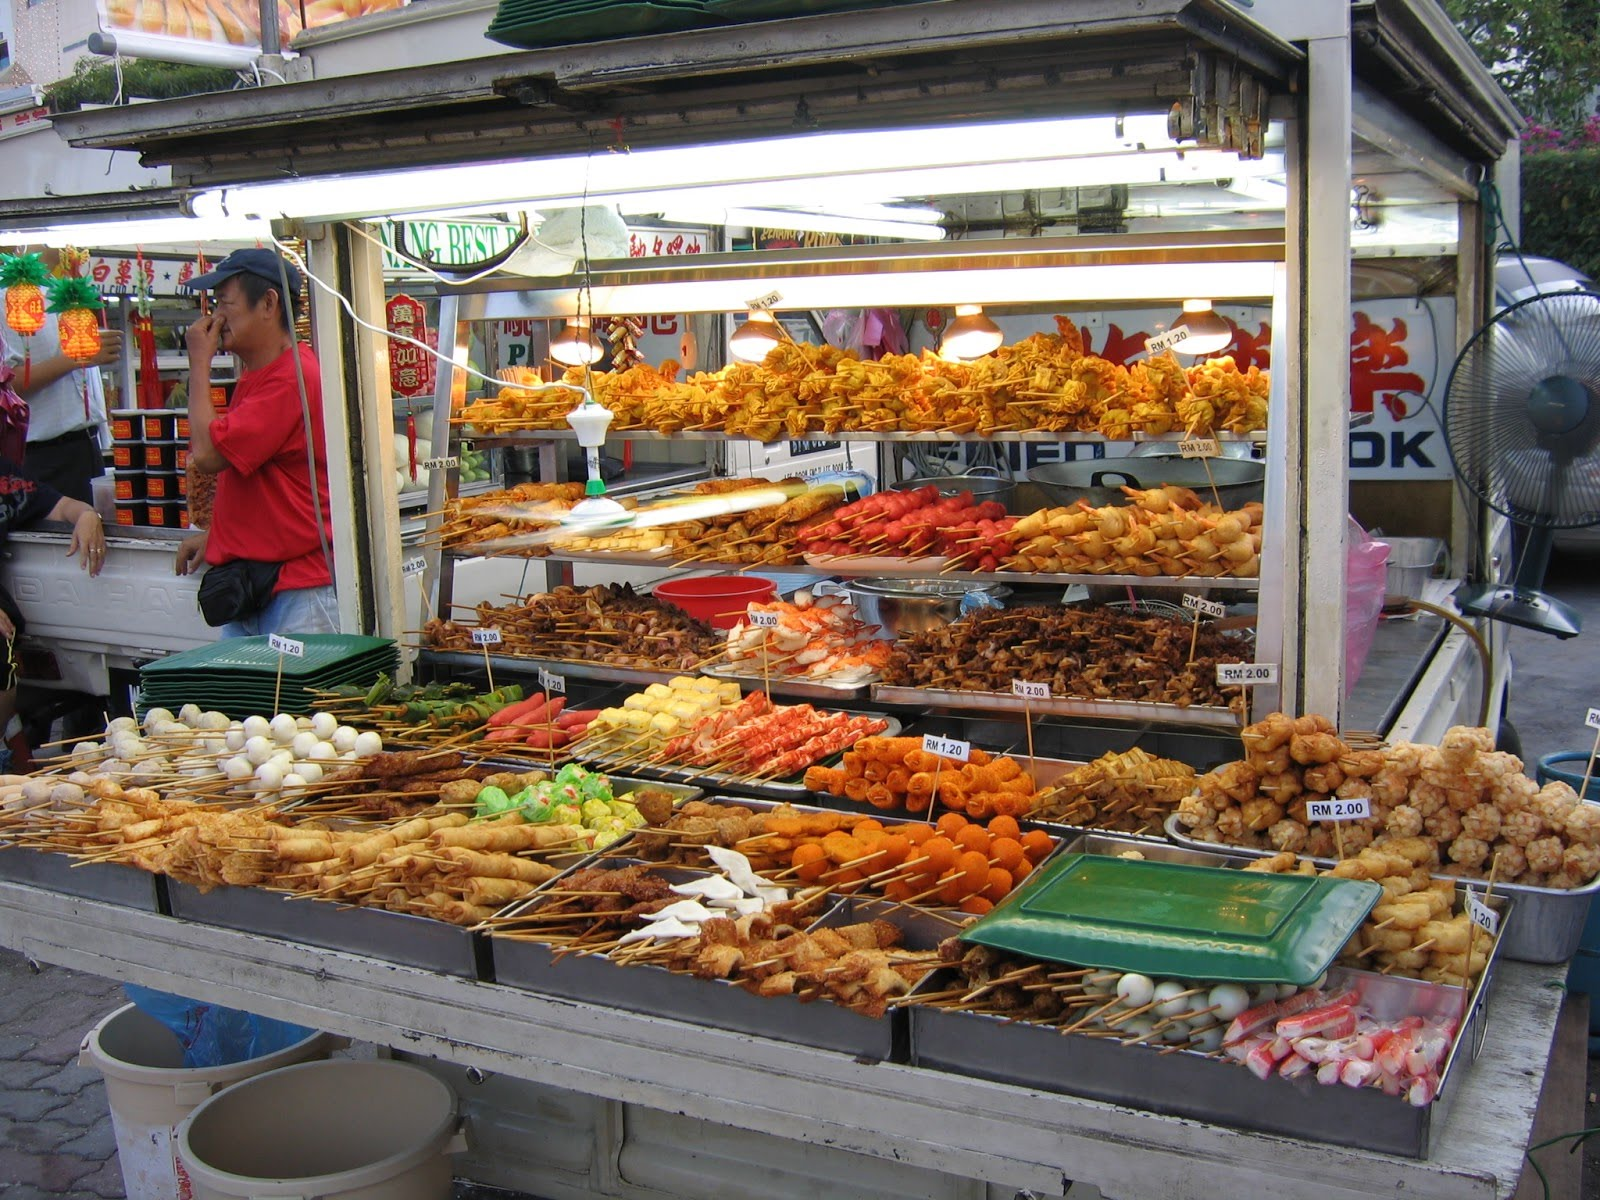 Dive trip to the Philippines: Top 5 streets food to try after the dive